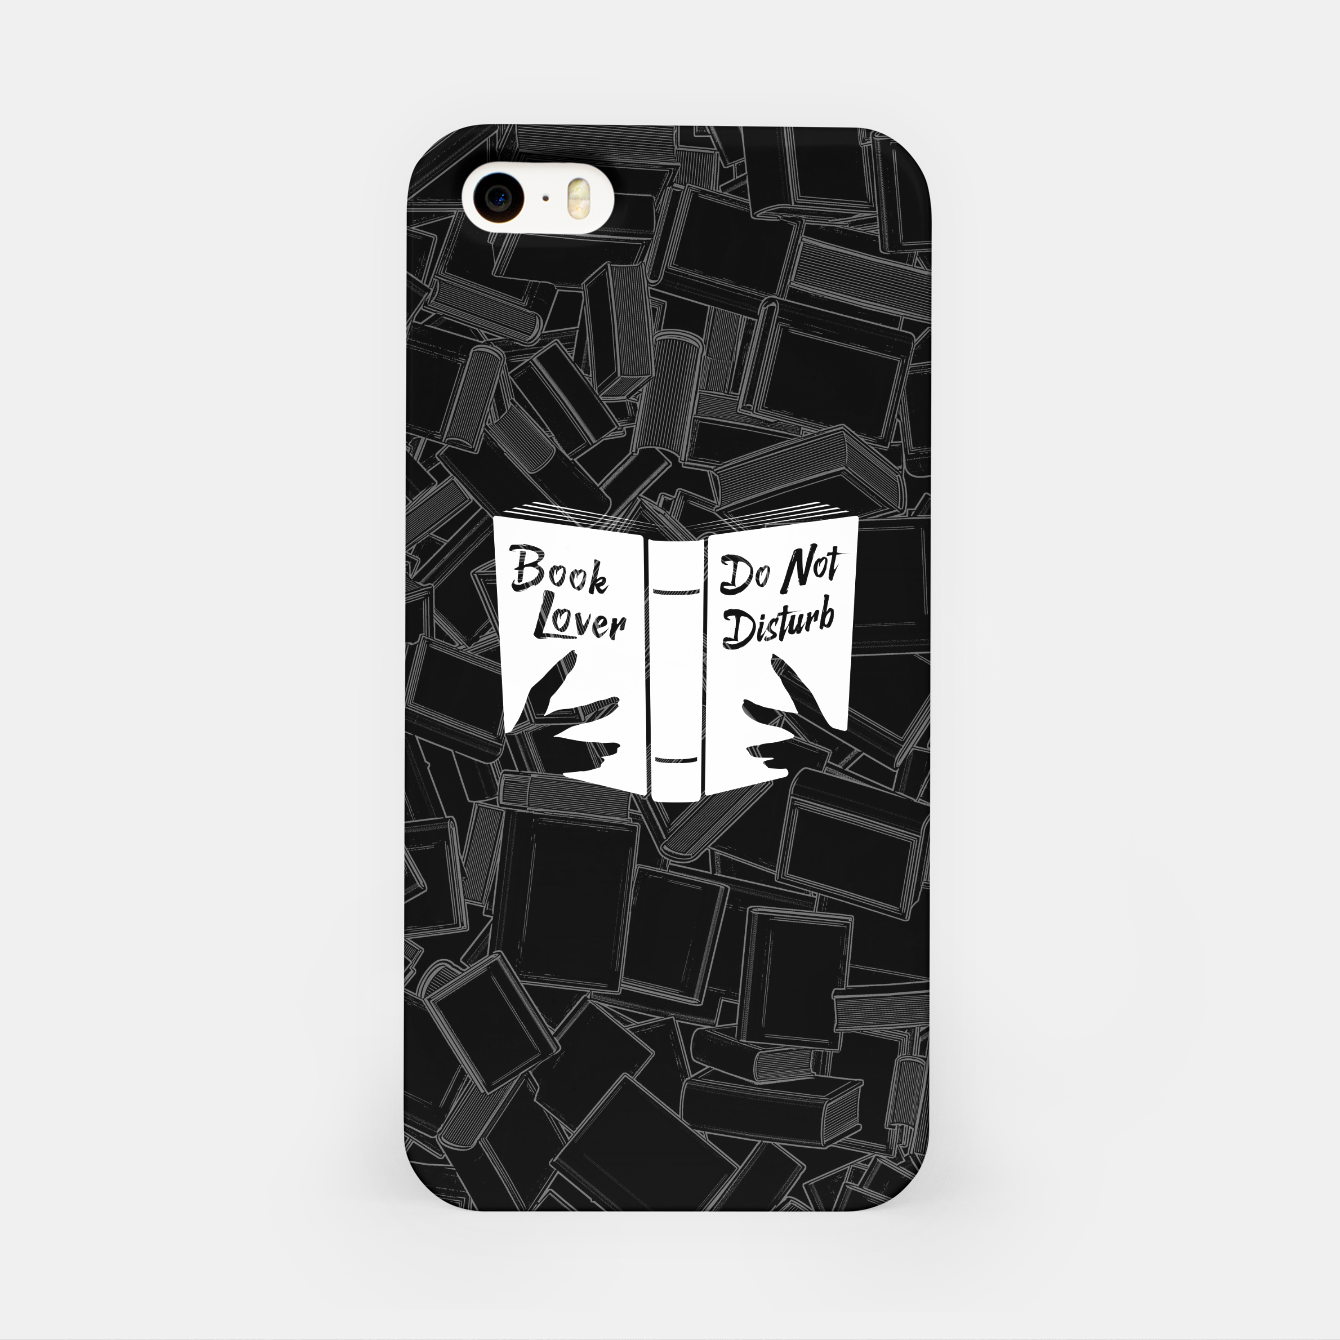 Foto Book Lover, Do Not Disturb iPhone Case - Live Heroes